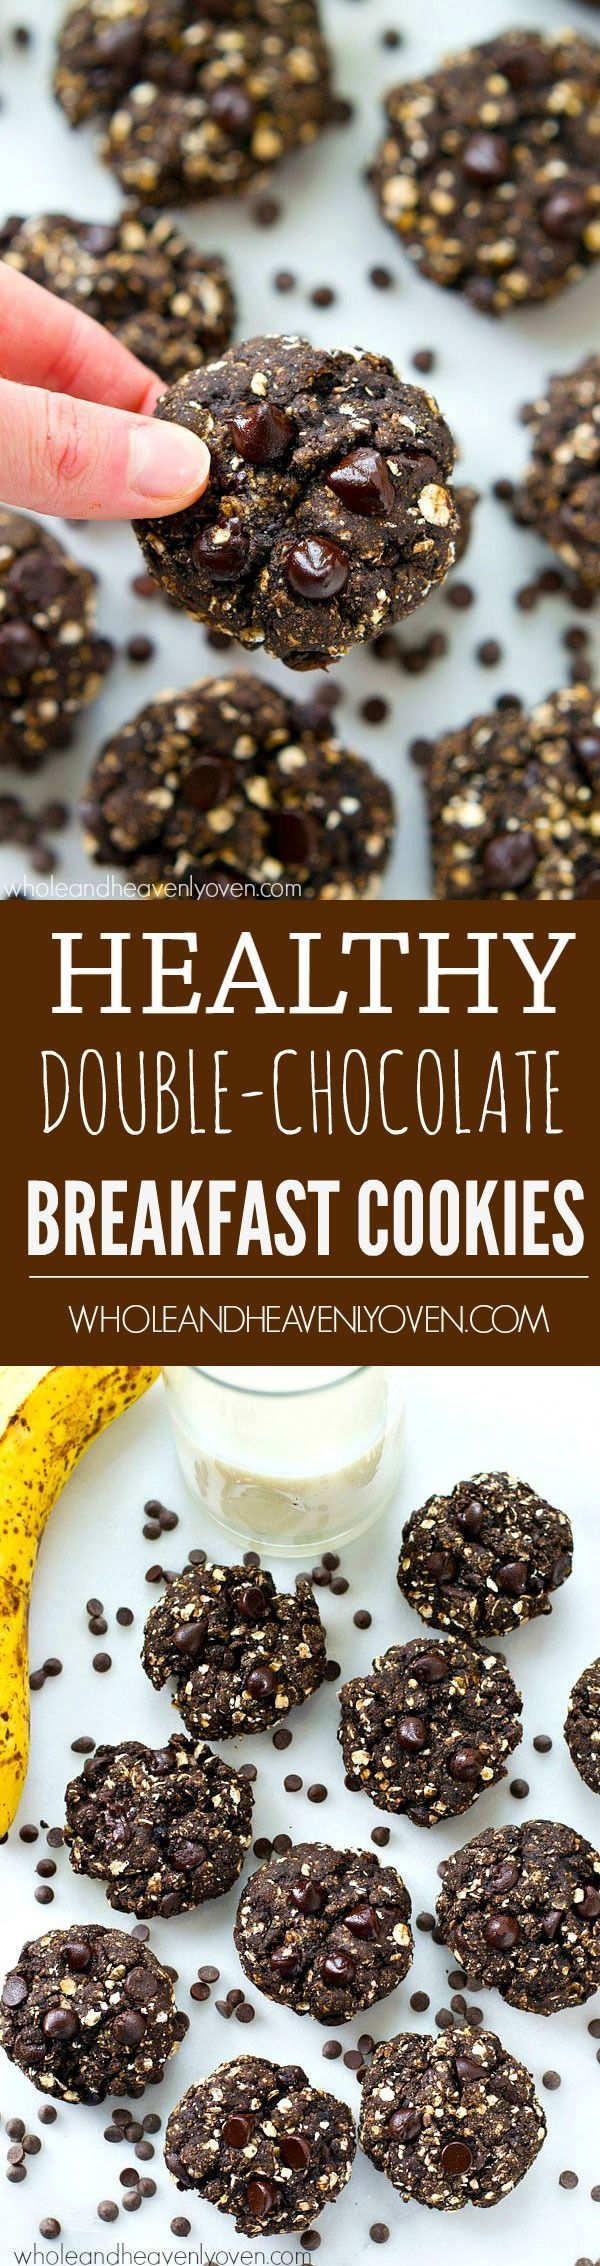 Healthy cookies for breakfast? Yes, this is possible! These easy breakfast cookies are loaded up with tons of chocolate and only contain 150 calories each!